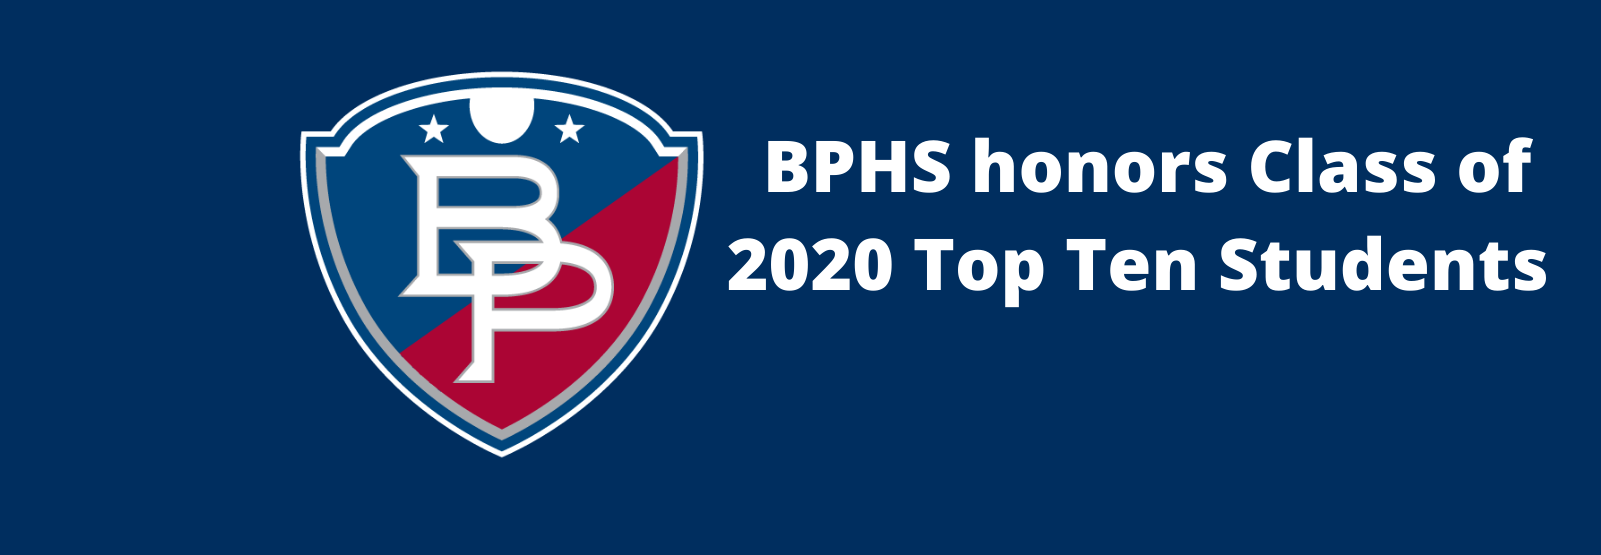 BPHS honors Class of 2020 Top Ten Students